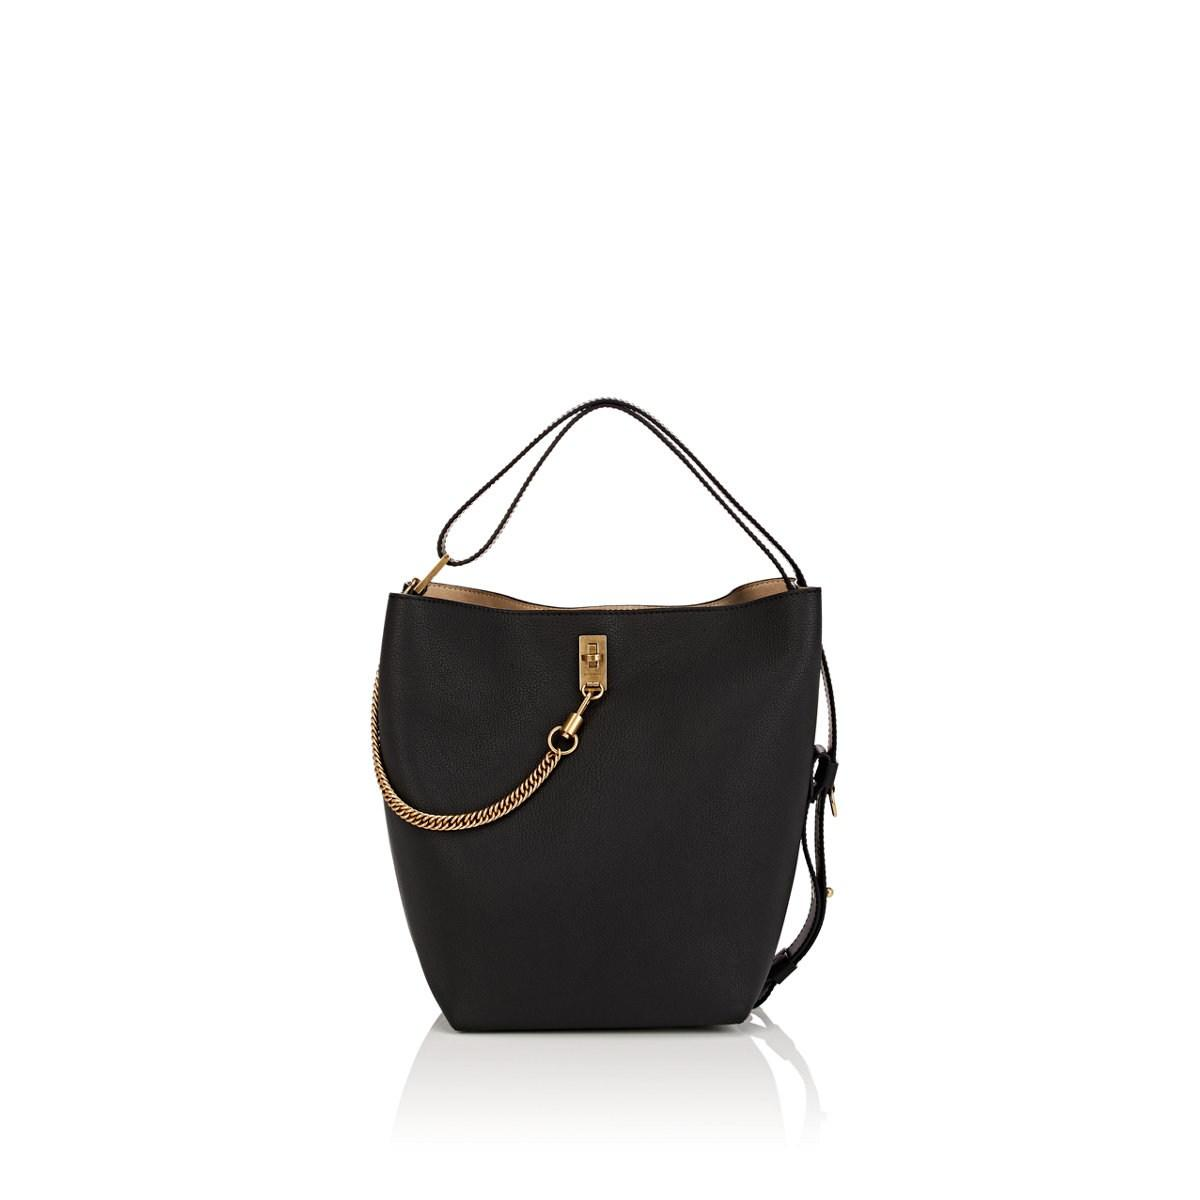 d99fdfb87e38 Givenchy Gv Leather Bucket Bag in Black - Lyst